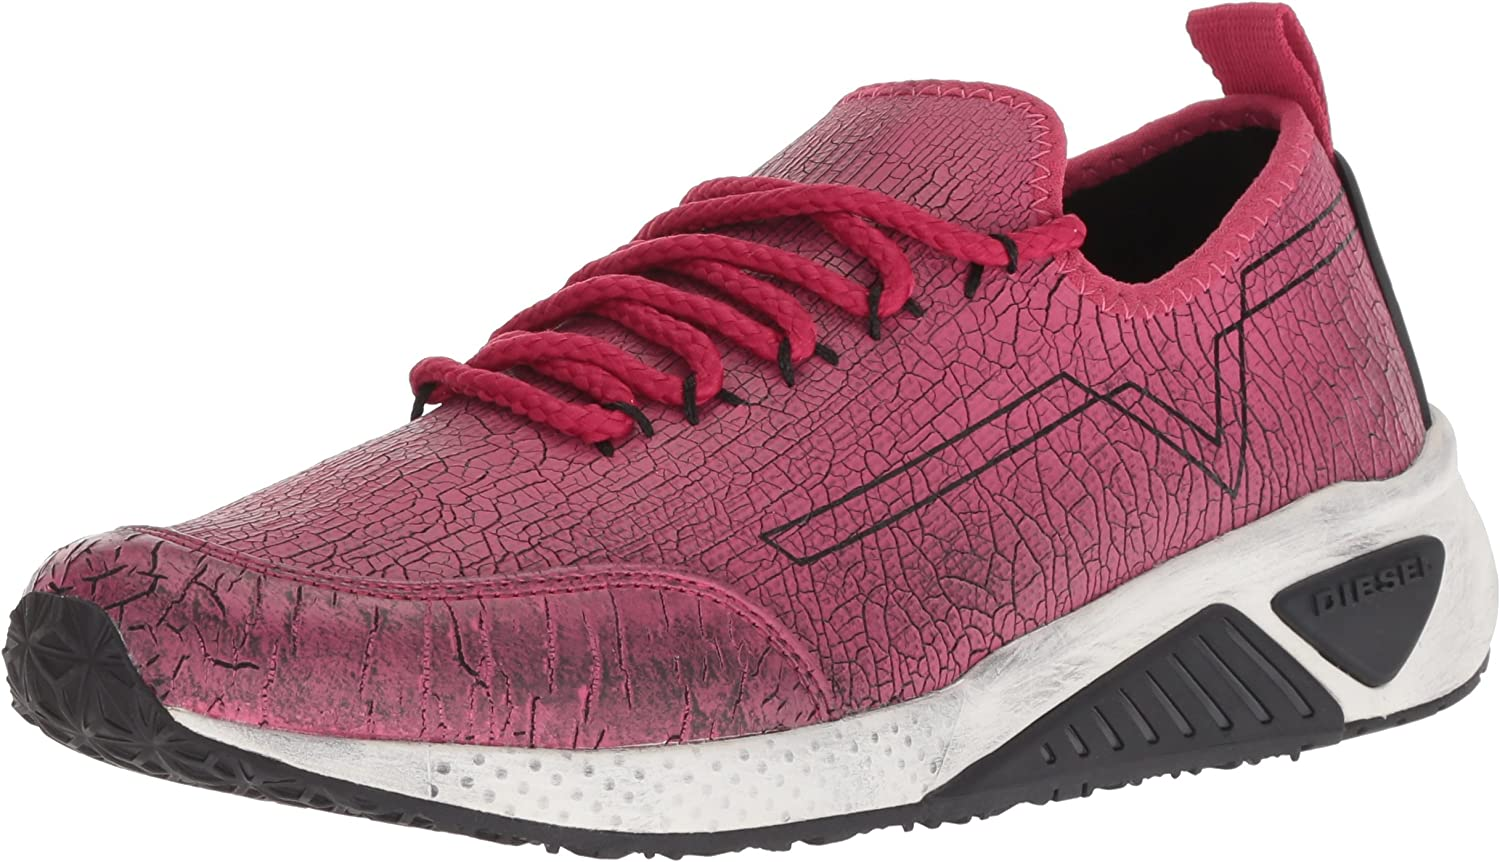 Store Diesel Women's SKB S-kby Project-Sneakers Free shipping